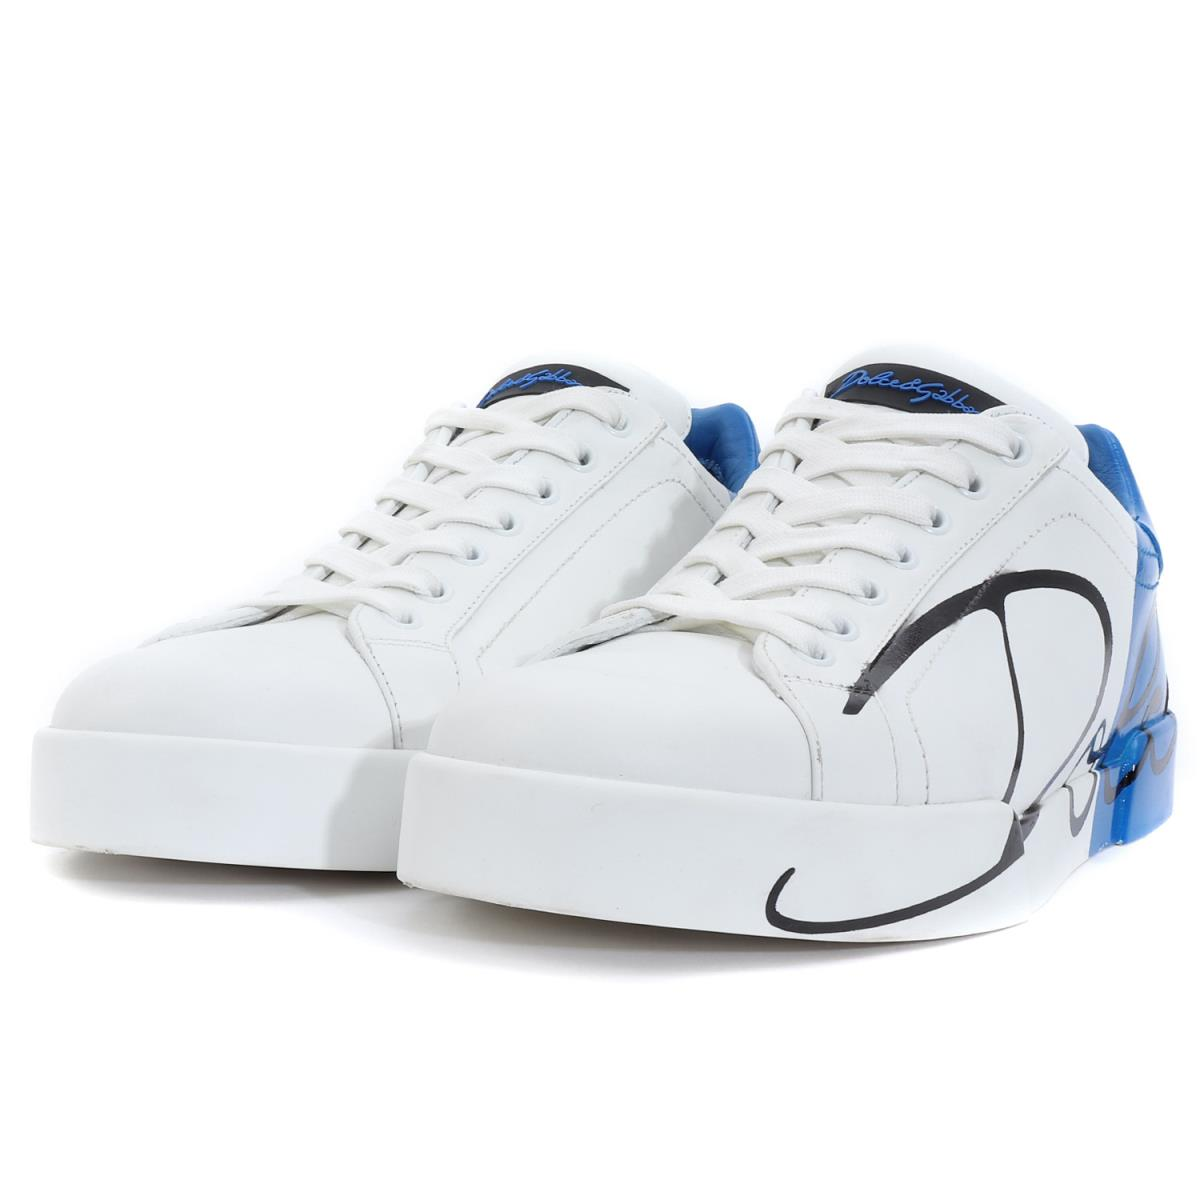 85053d8a22f8 DOLCE GABBANA (Dolce   Gabbana) 18S S brand logo by color leather low-frequency  cut sneakers (PORTOFINO) white X blue 8